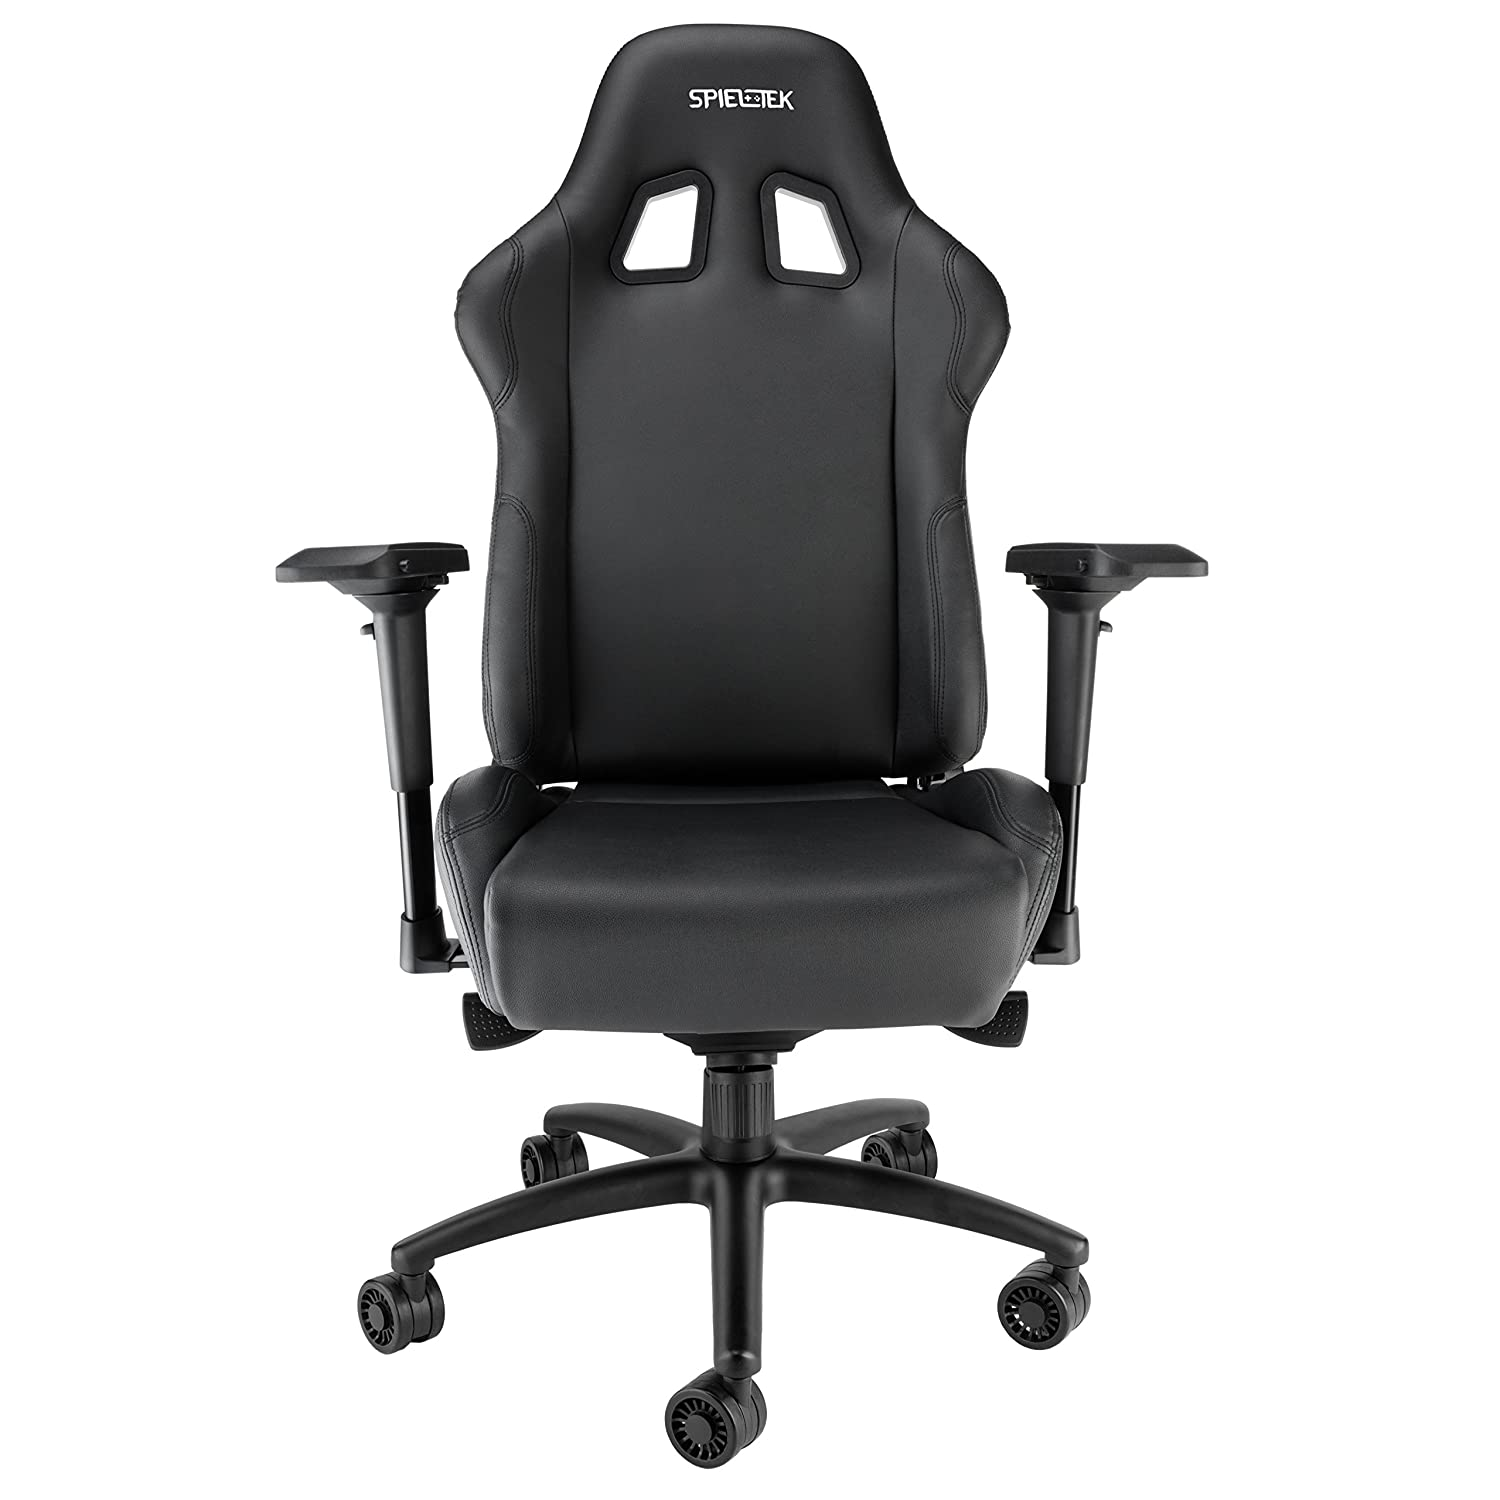 Amazon.com: Spieltek Bandit XL Gaming Chair (Black): Kitchen ...